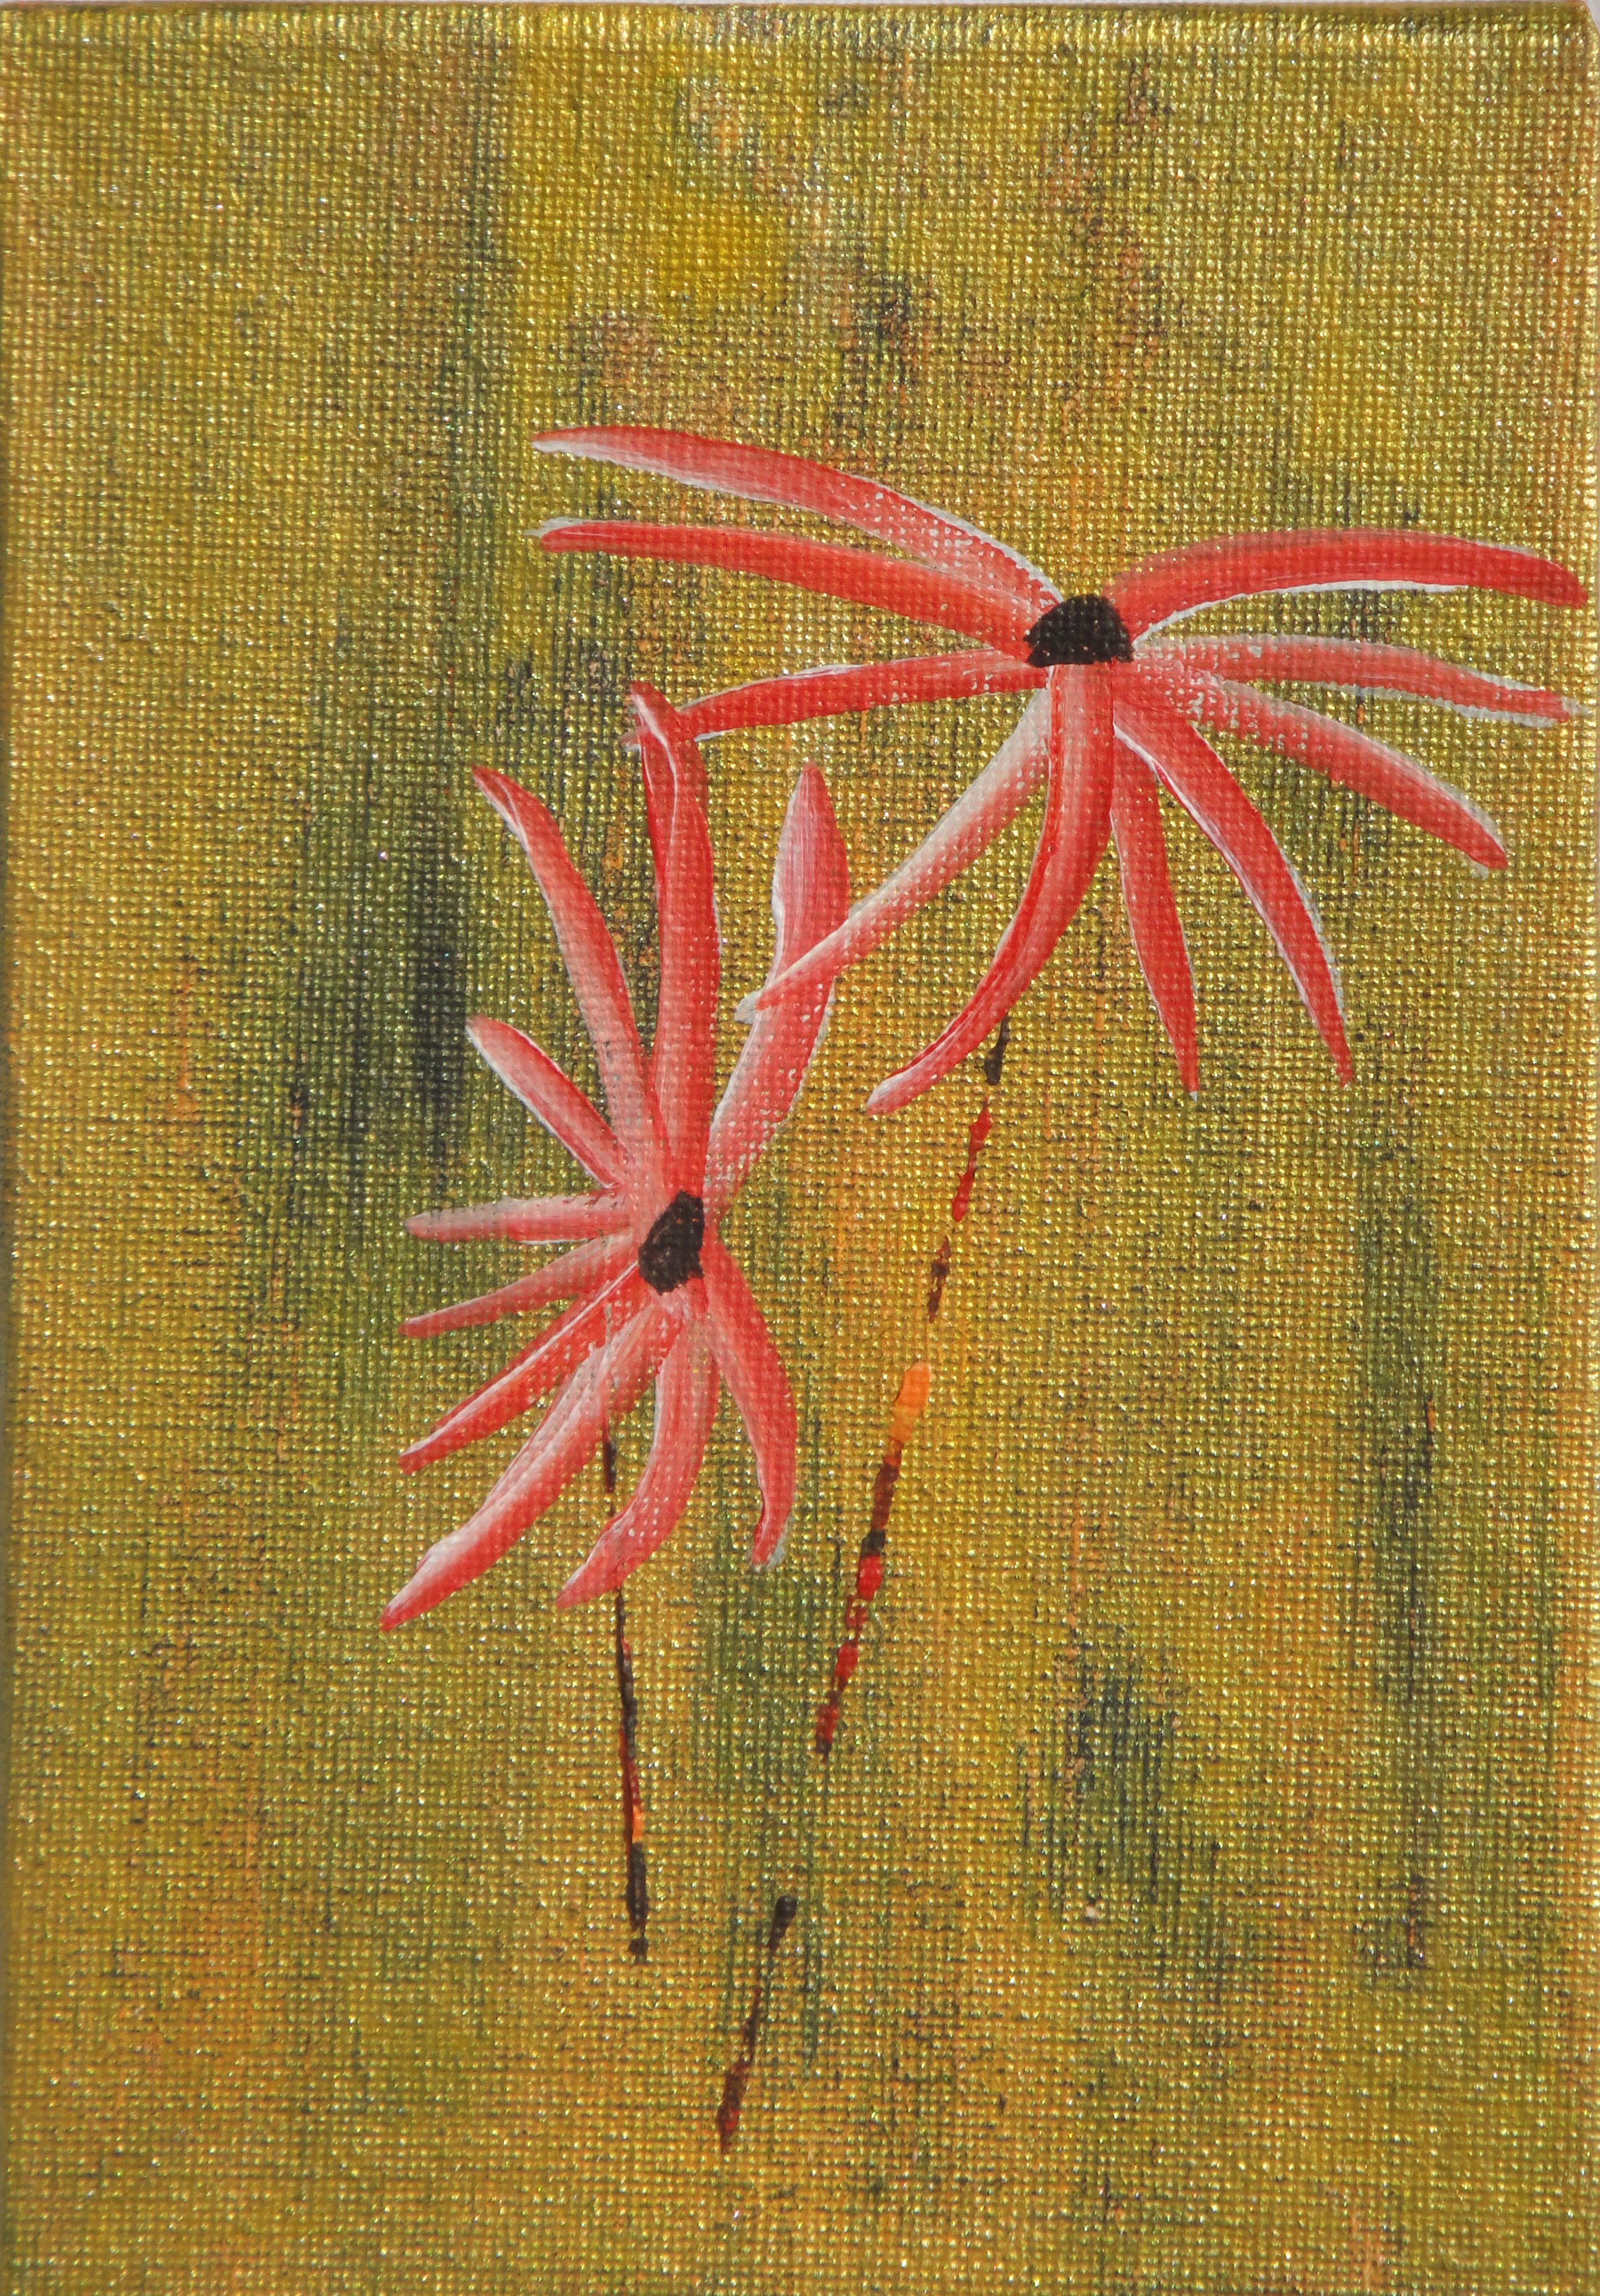 13_02__5_x_7__Flowers_Red_on_Gold